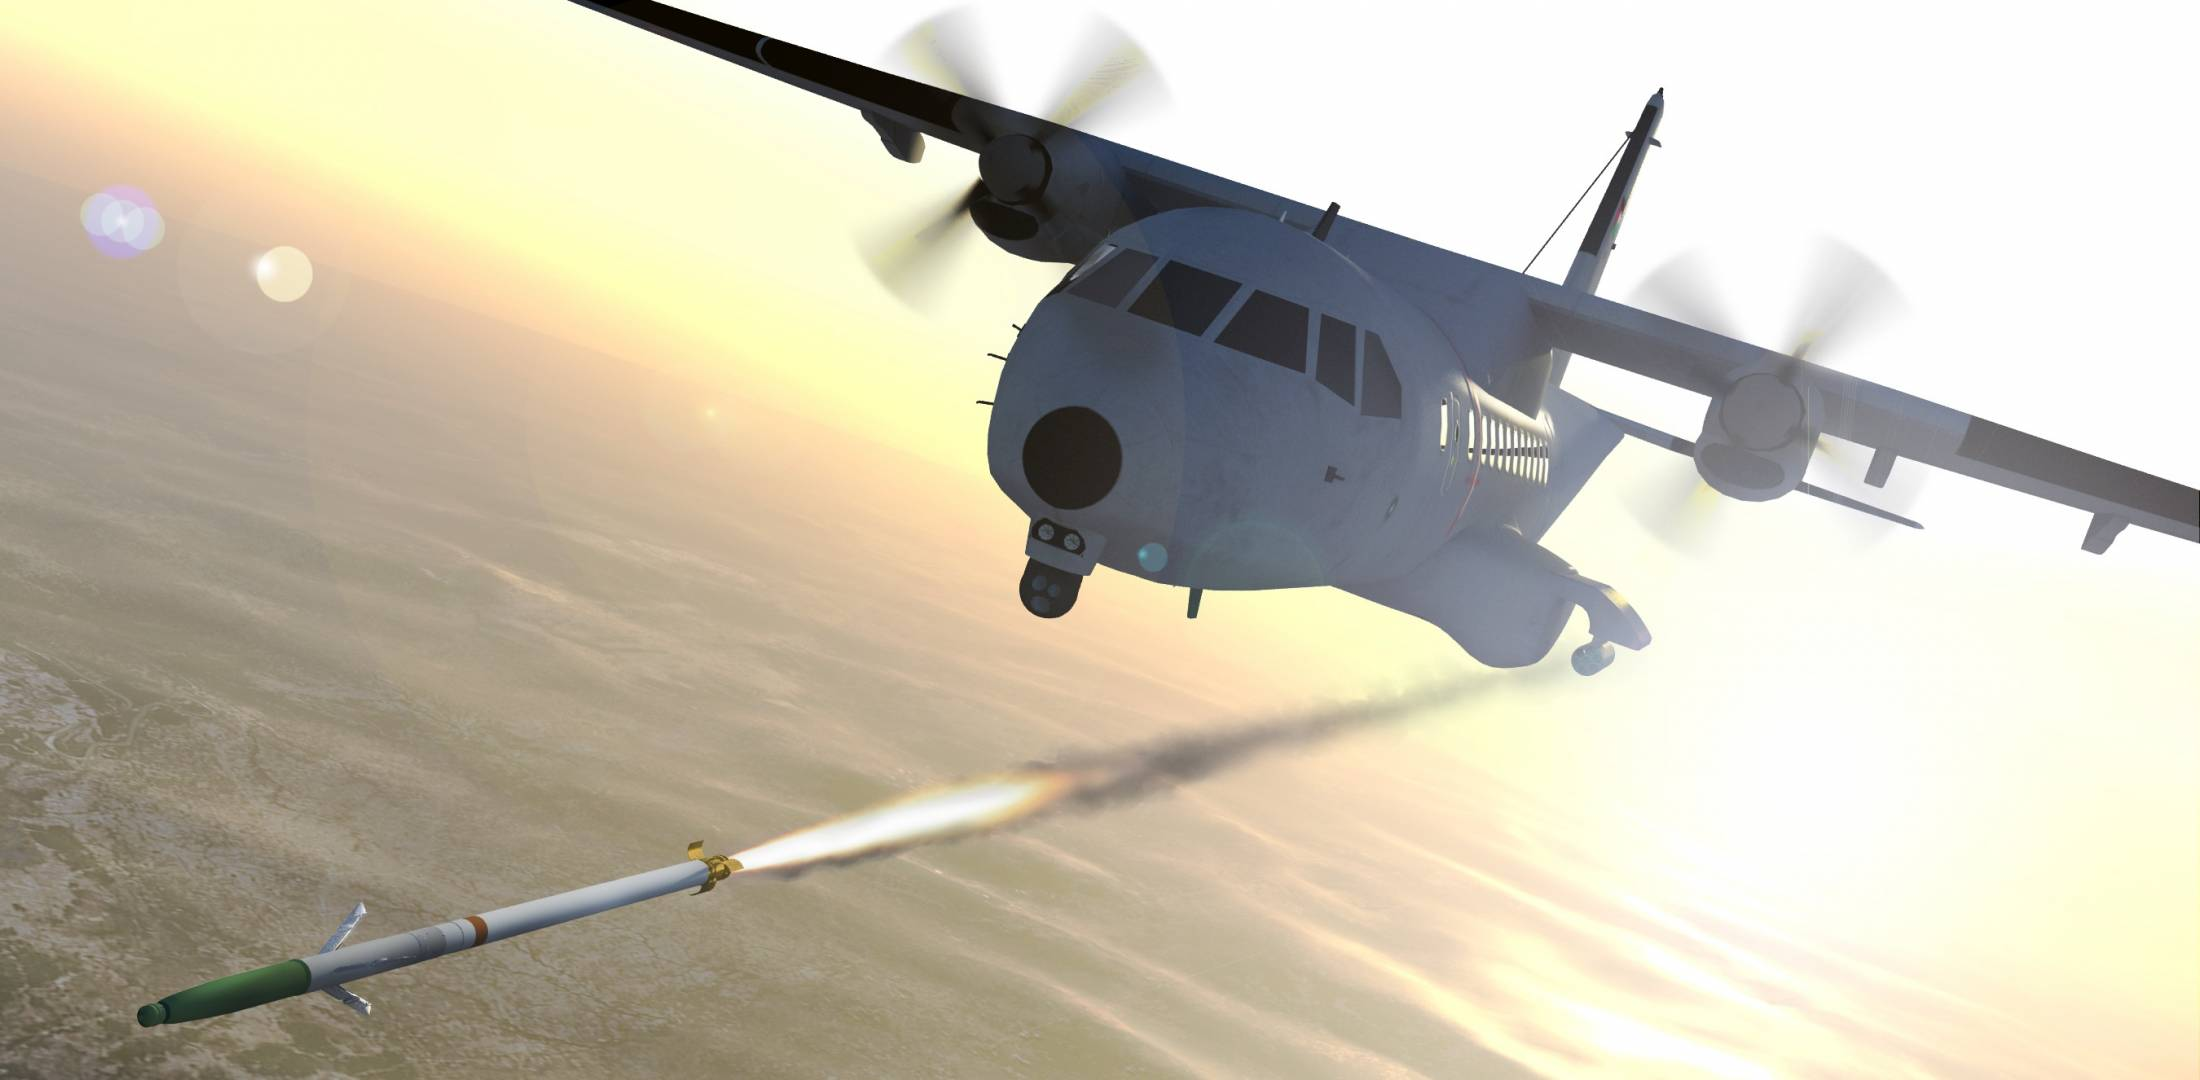 CASA-235 light gunship fires APKWS